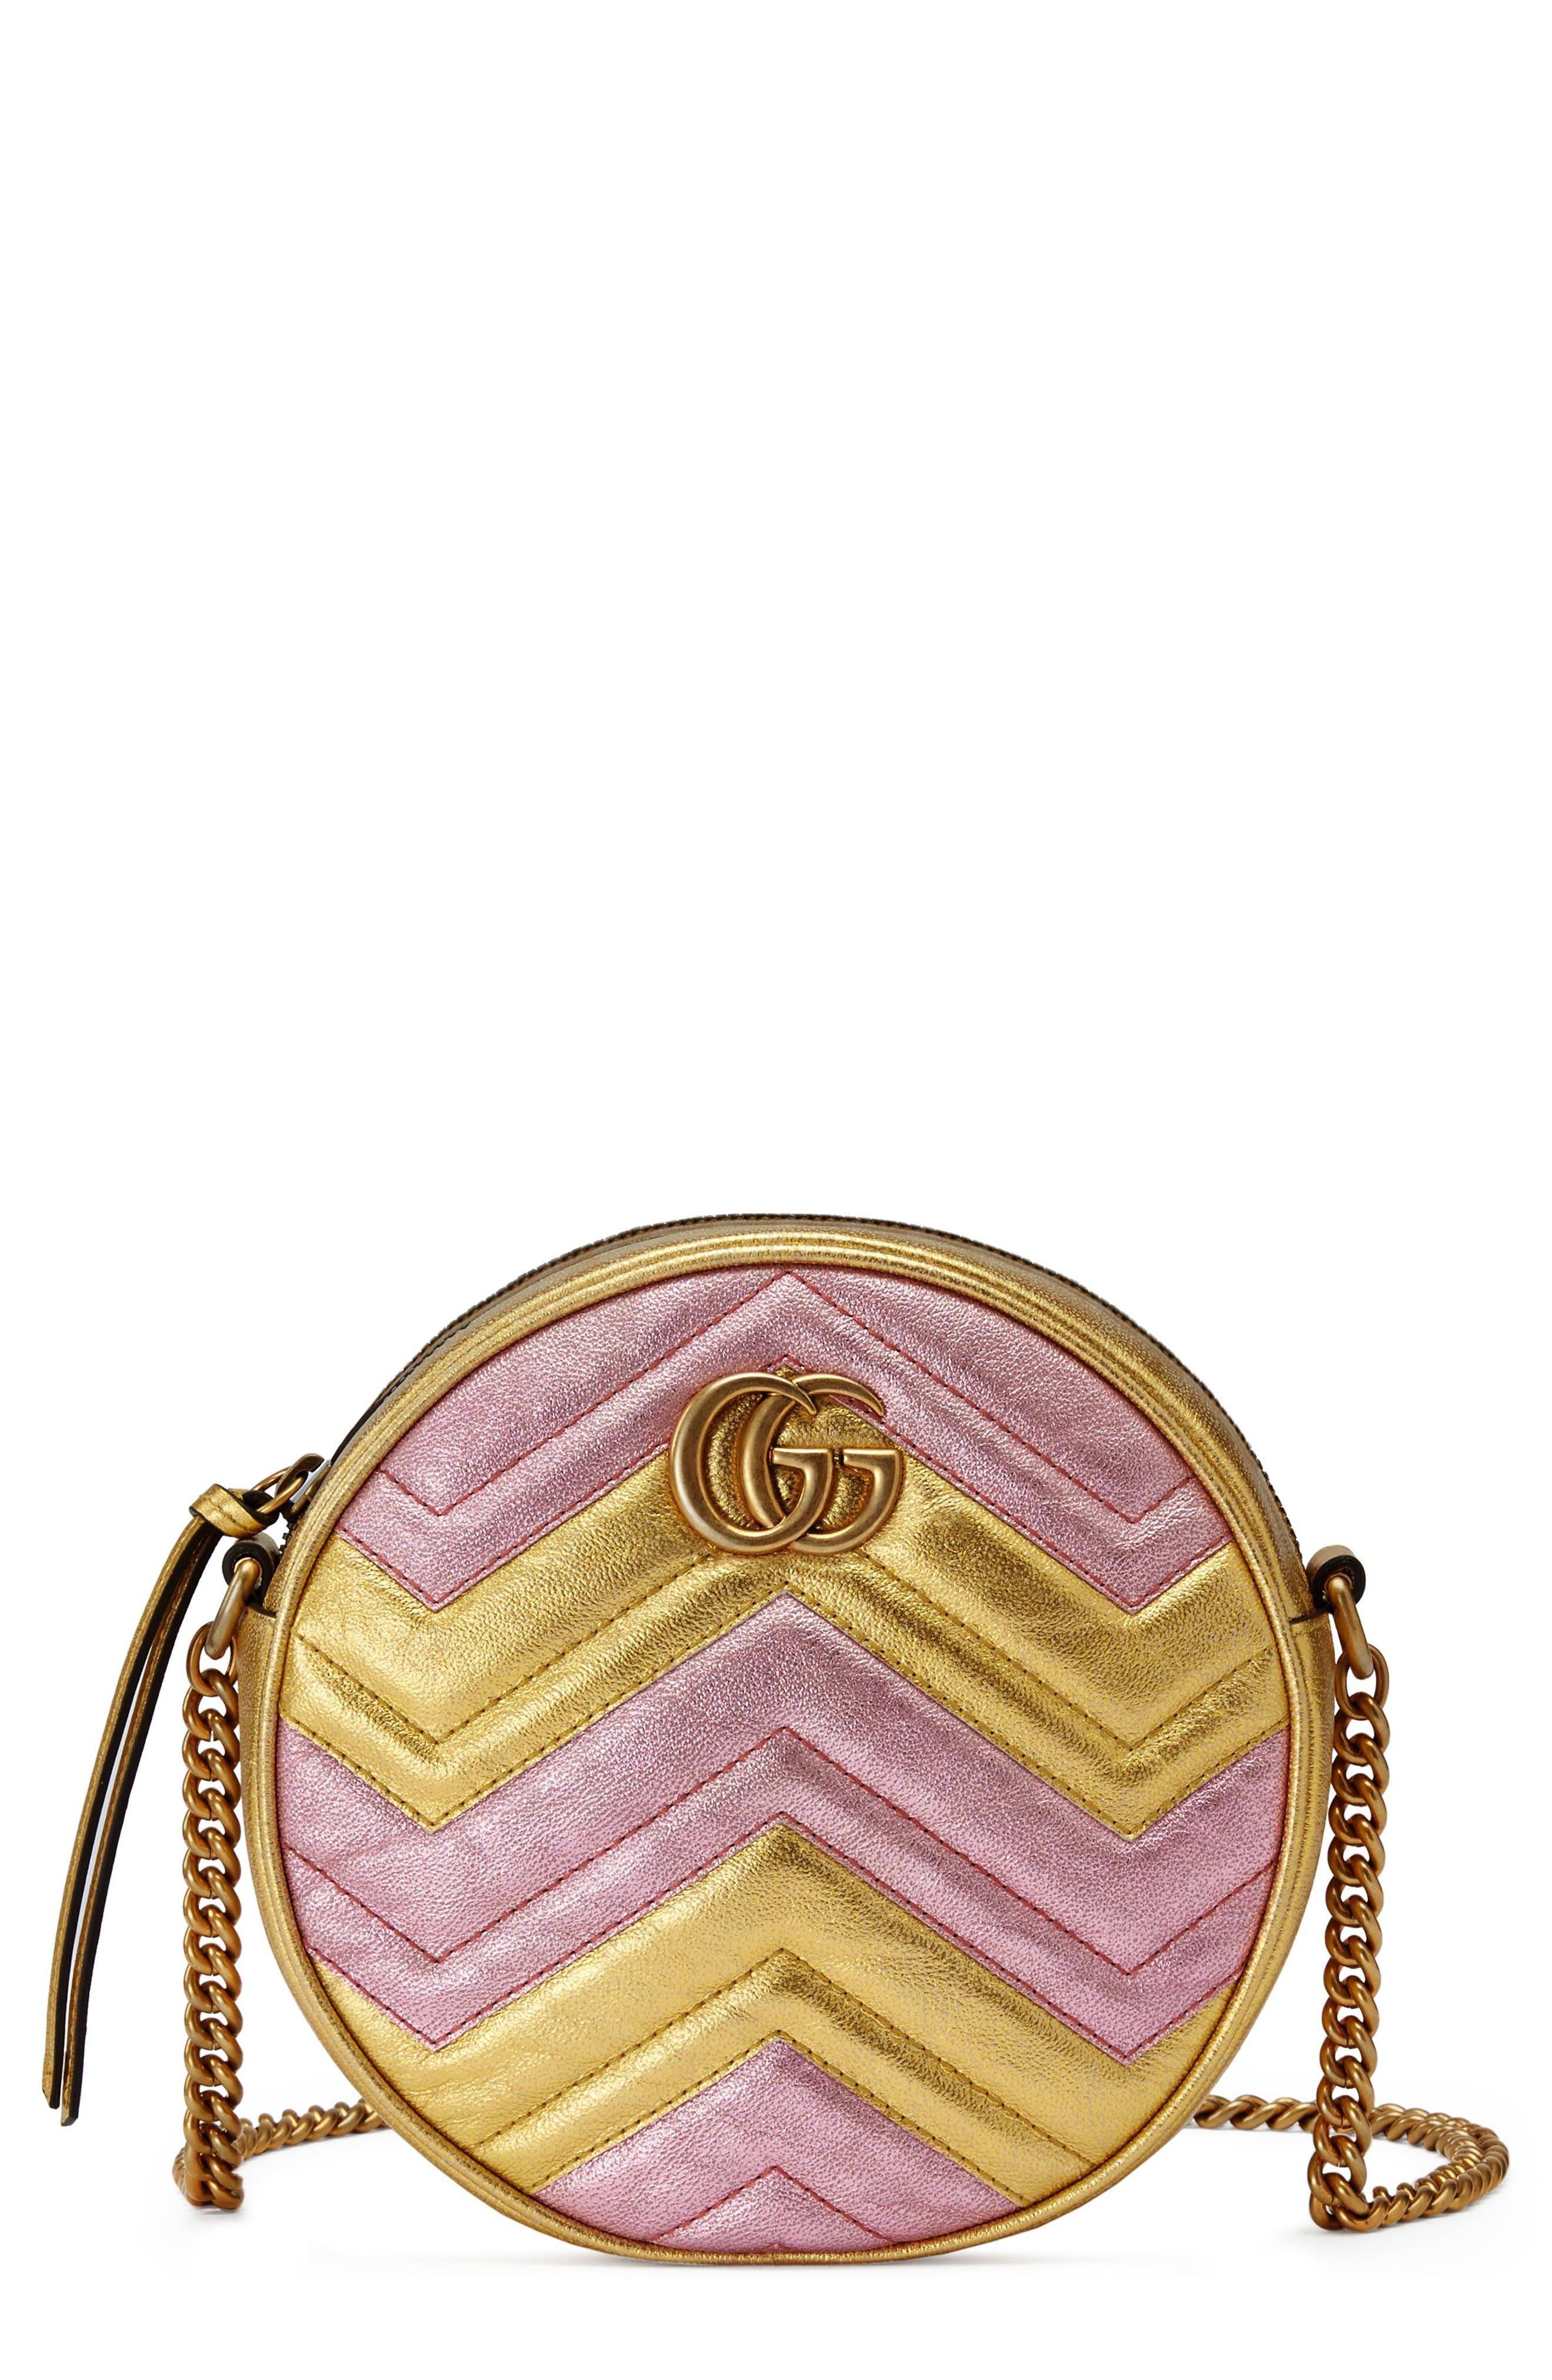 Marmont 2.0 Mini Leather Circle Crossbody Bag,                             Main thumbnail 1, color,                             ORO/ ROSA